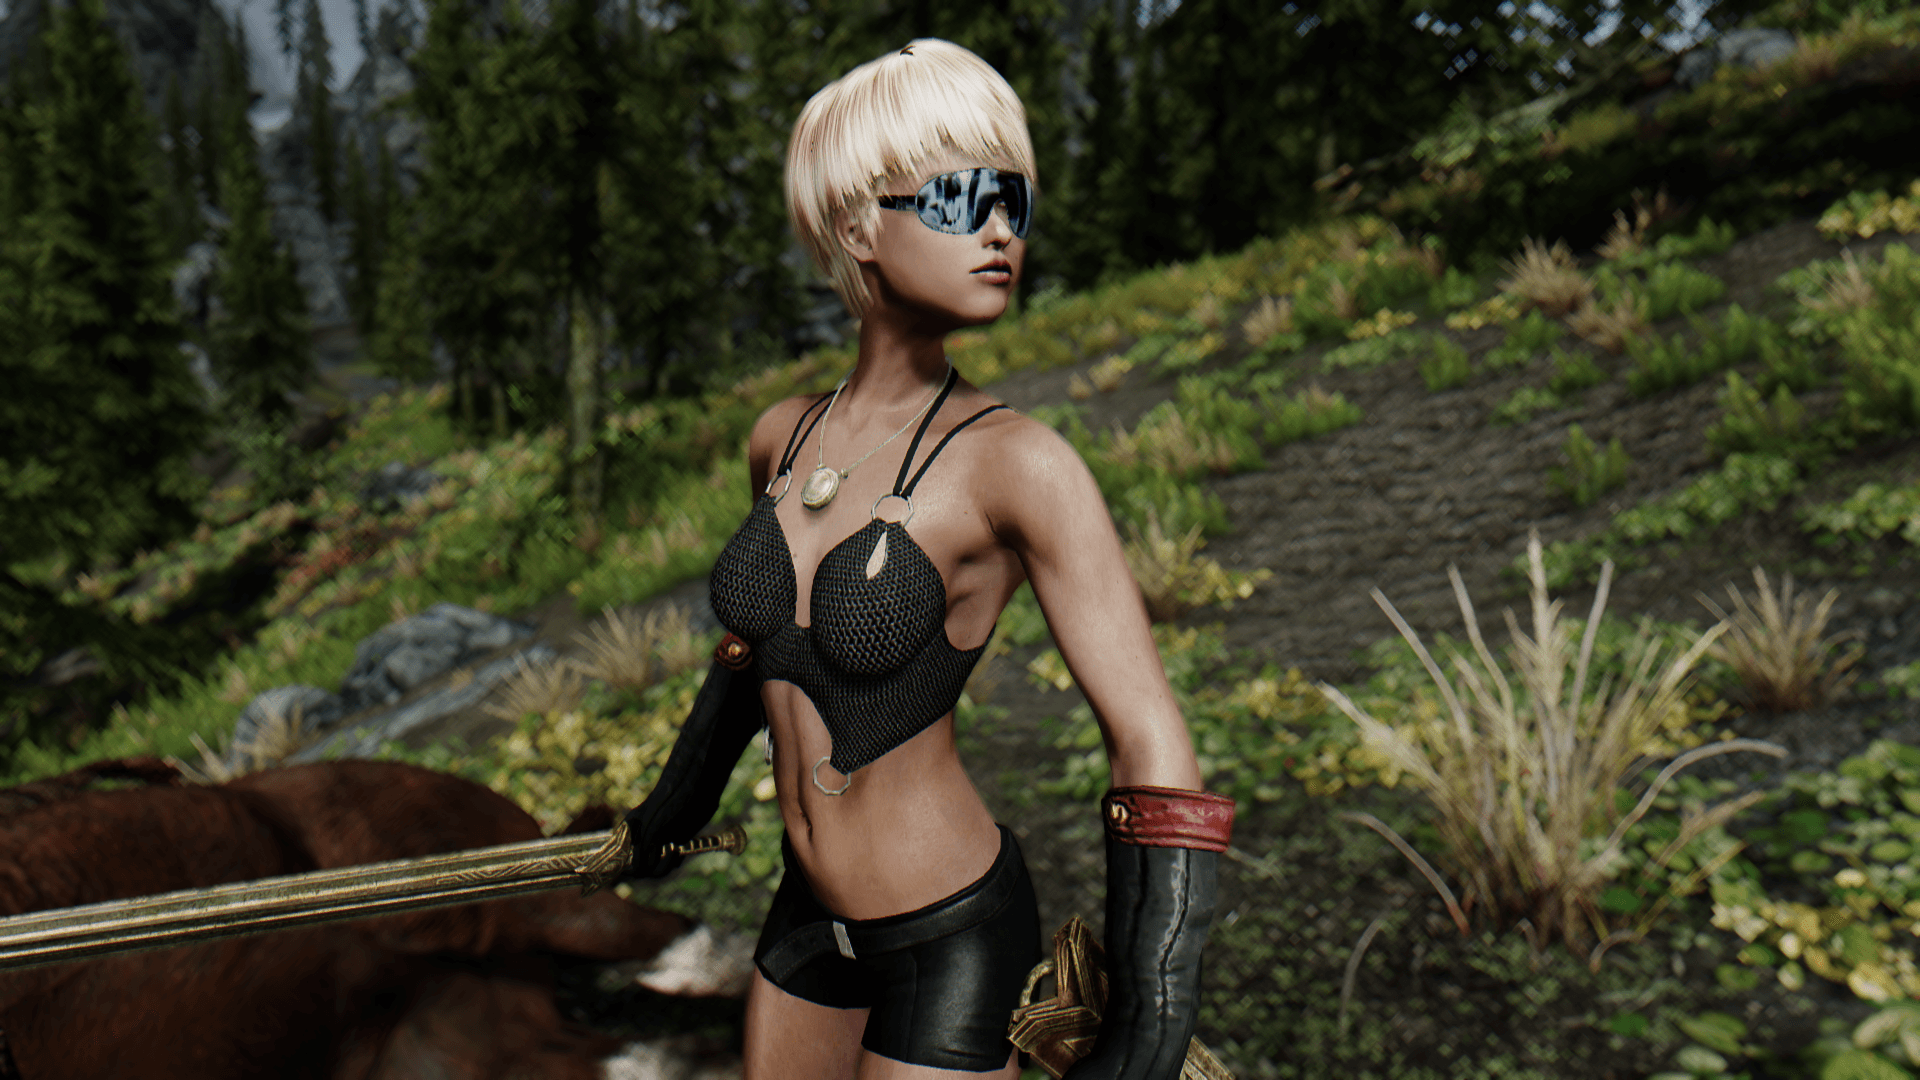 Miley Cyrus of Skyrim 2